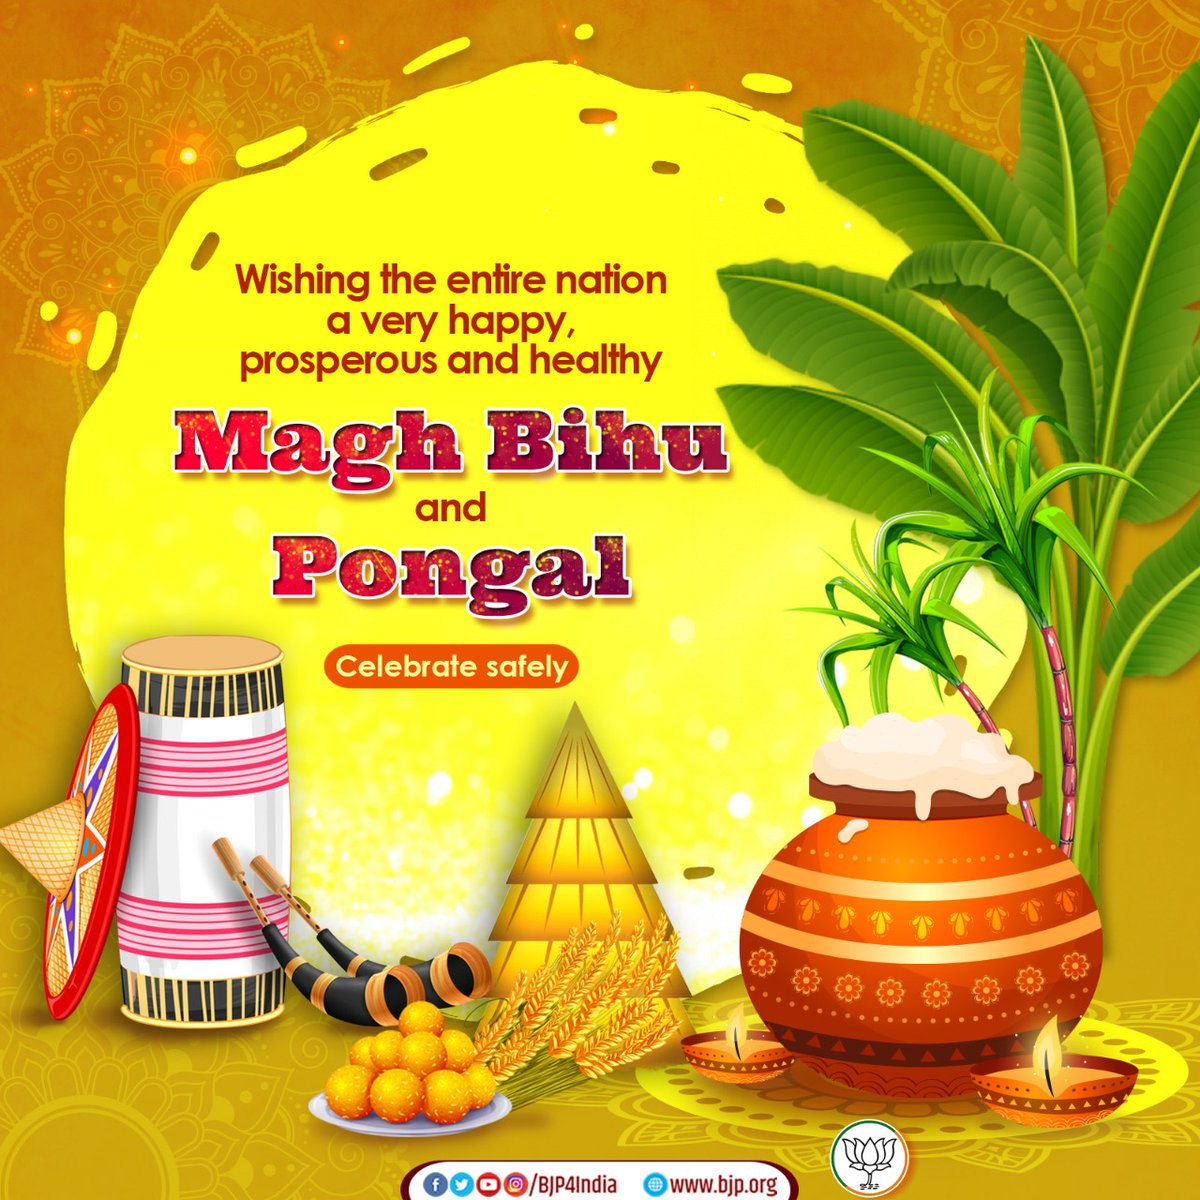 Wishing the entire nation a very happy, prosperous and healthy Magh Bihu and Pongal.